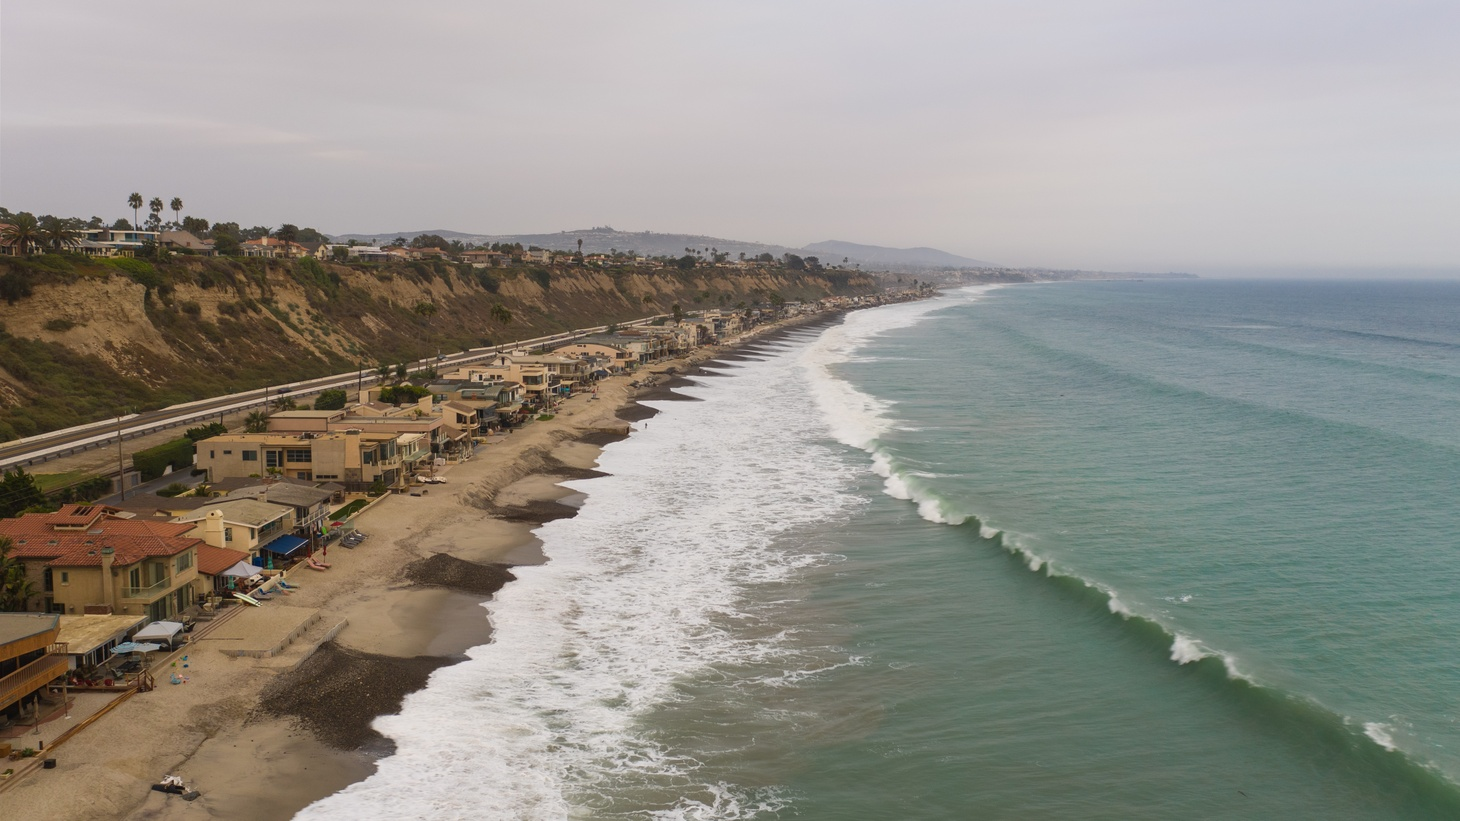 Capistrano Beach lies at the southern end of Dana Point in Orange County. The California Coastal Commission is looking at nature-based plans to preserve it.